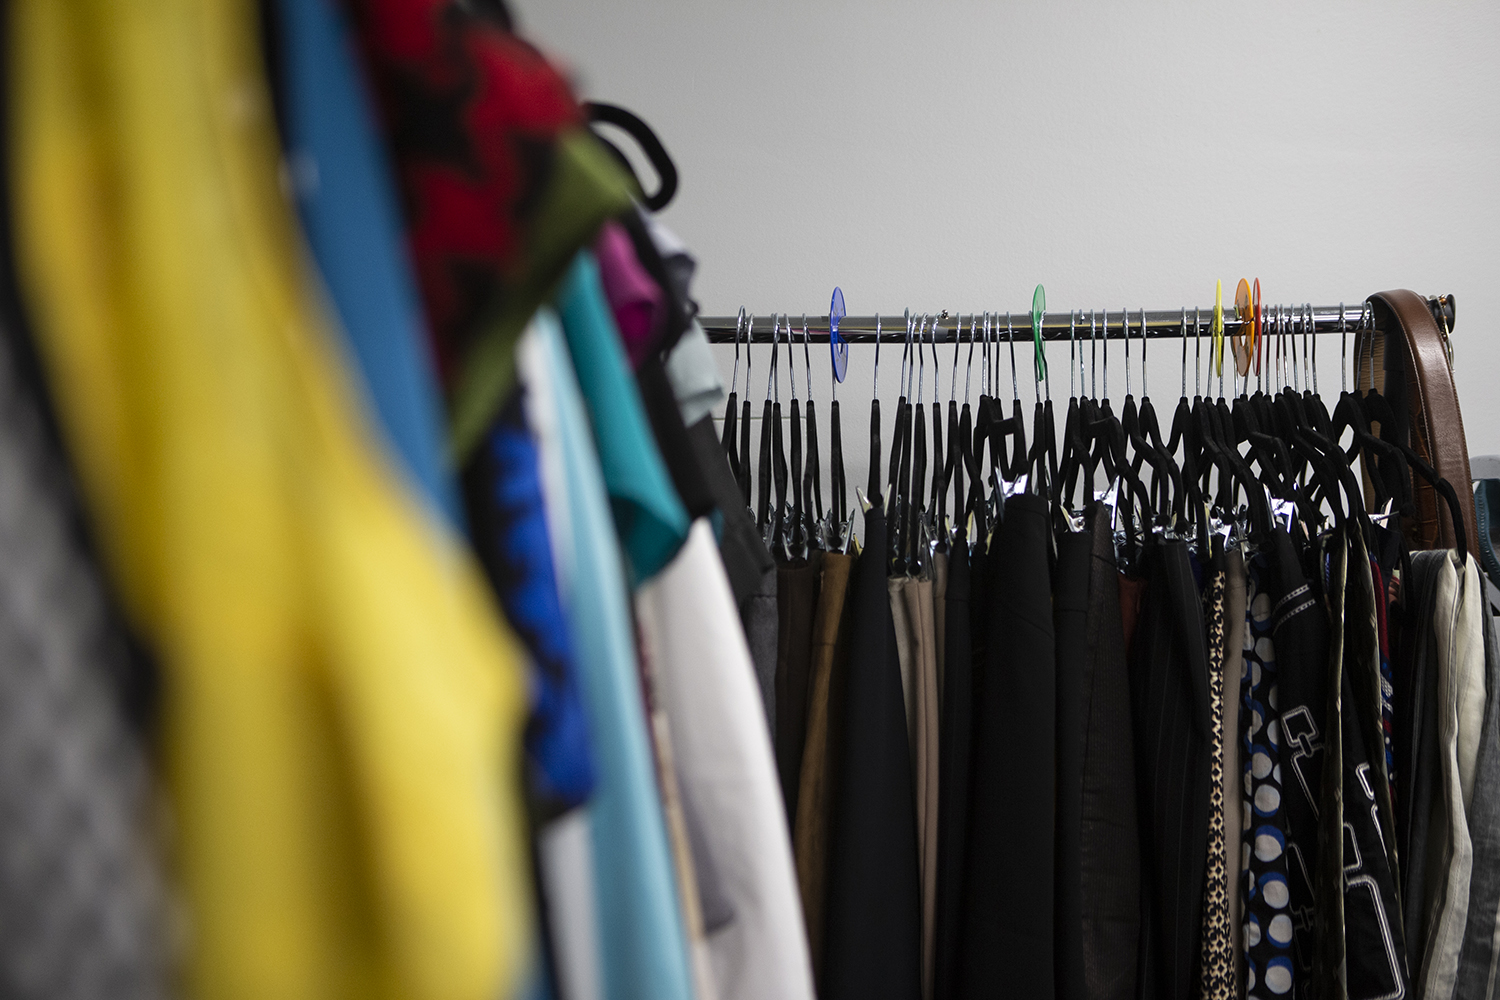 The Clothing Closet in the IMU is pictured on September 19, 2019.